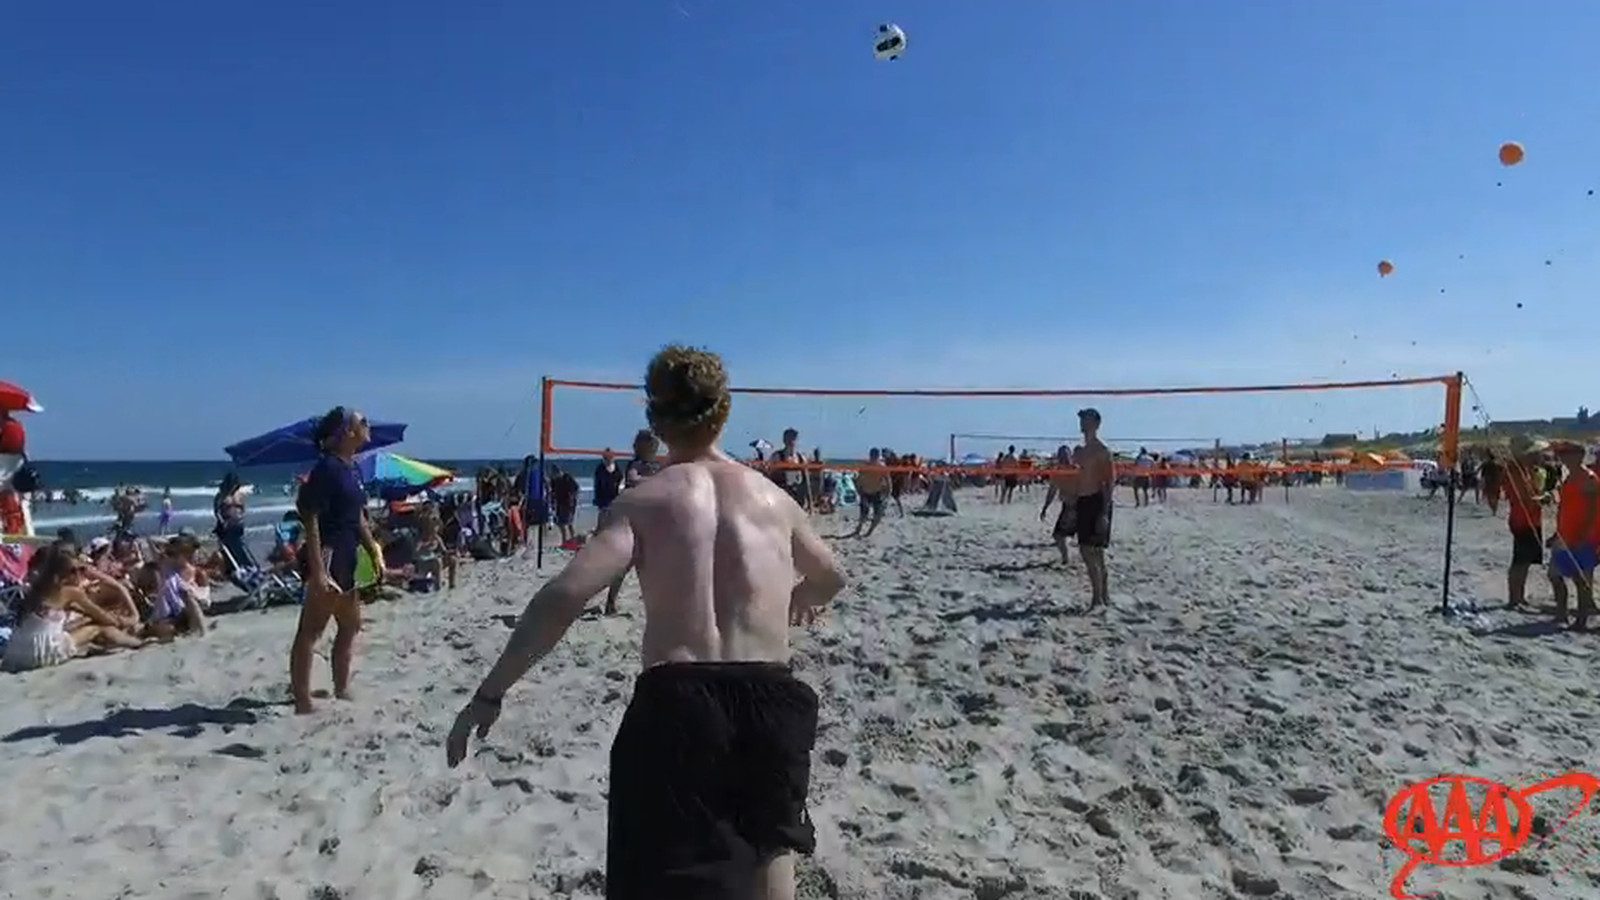 Trial_on_the_isle__volleyball___nhl.com.0.0